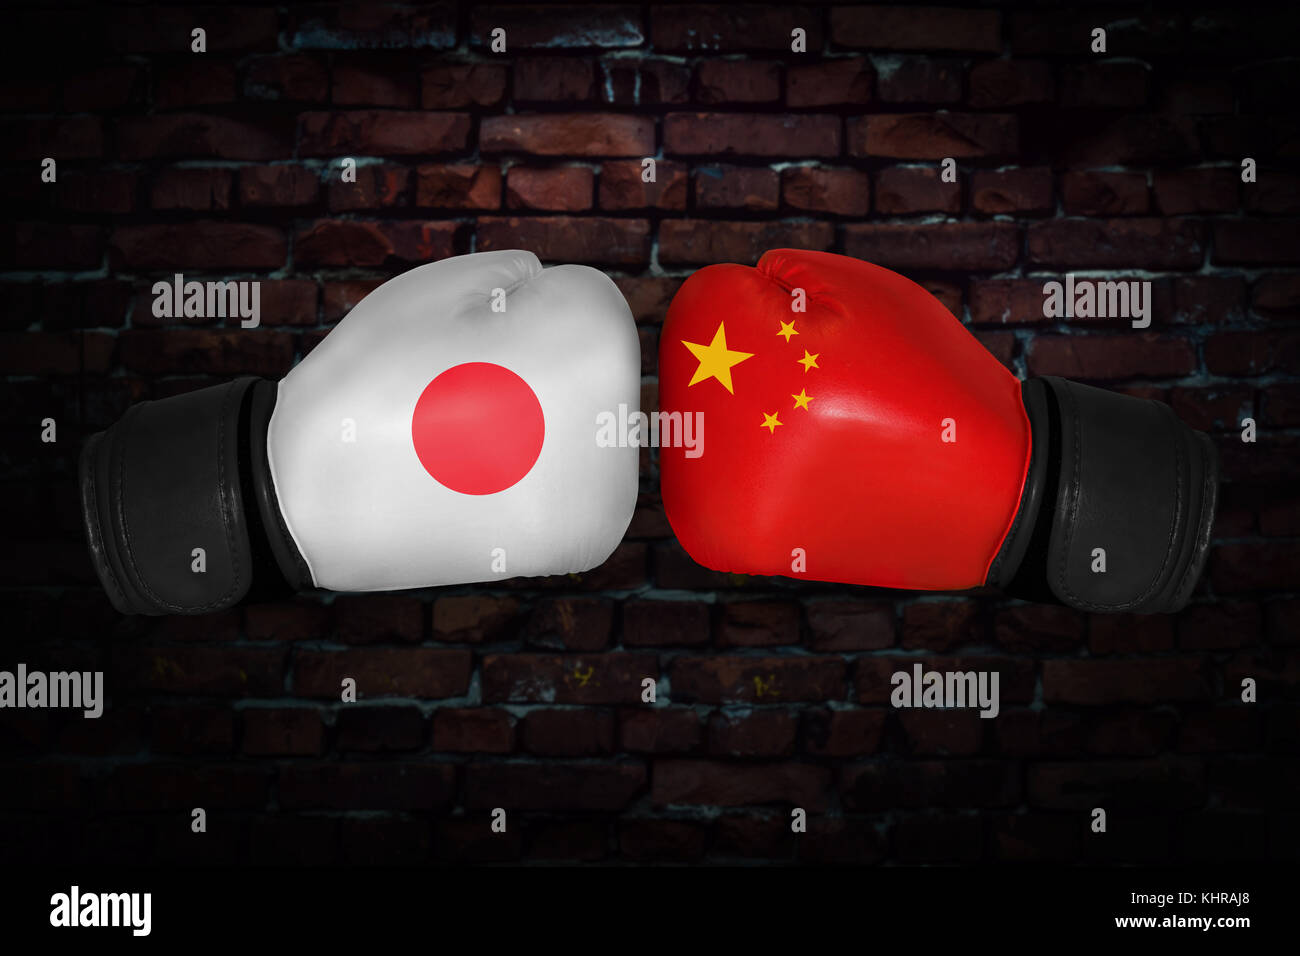 Japan Boxing Stock Photos & Japan Boxing Stock Images - Alamy